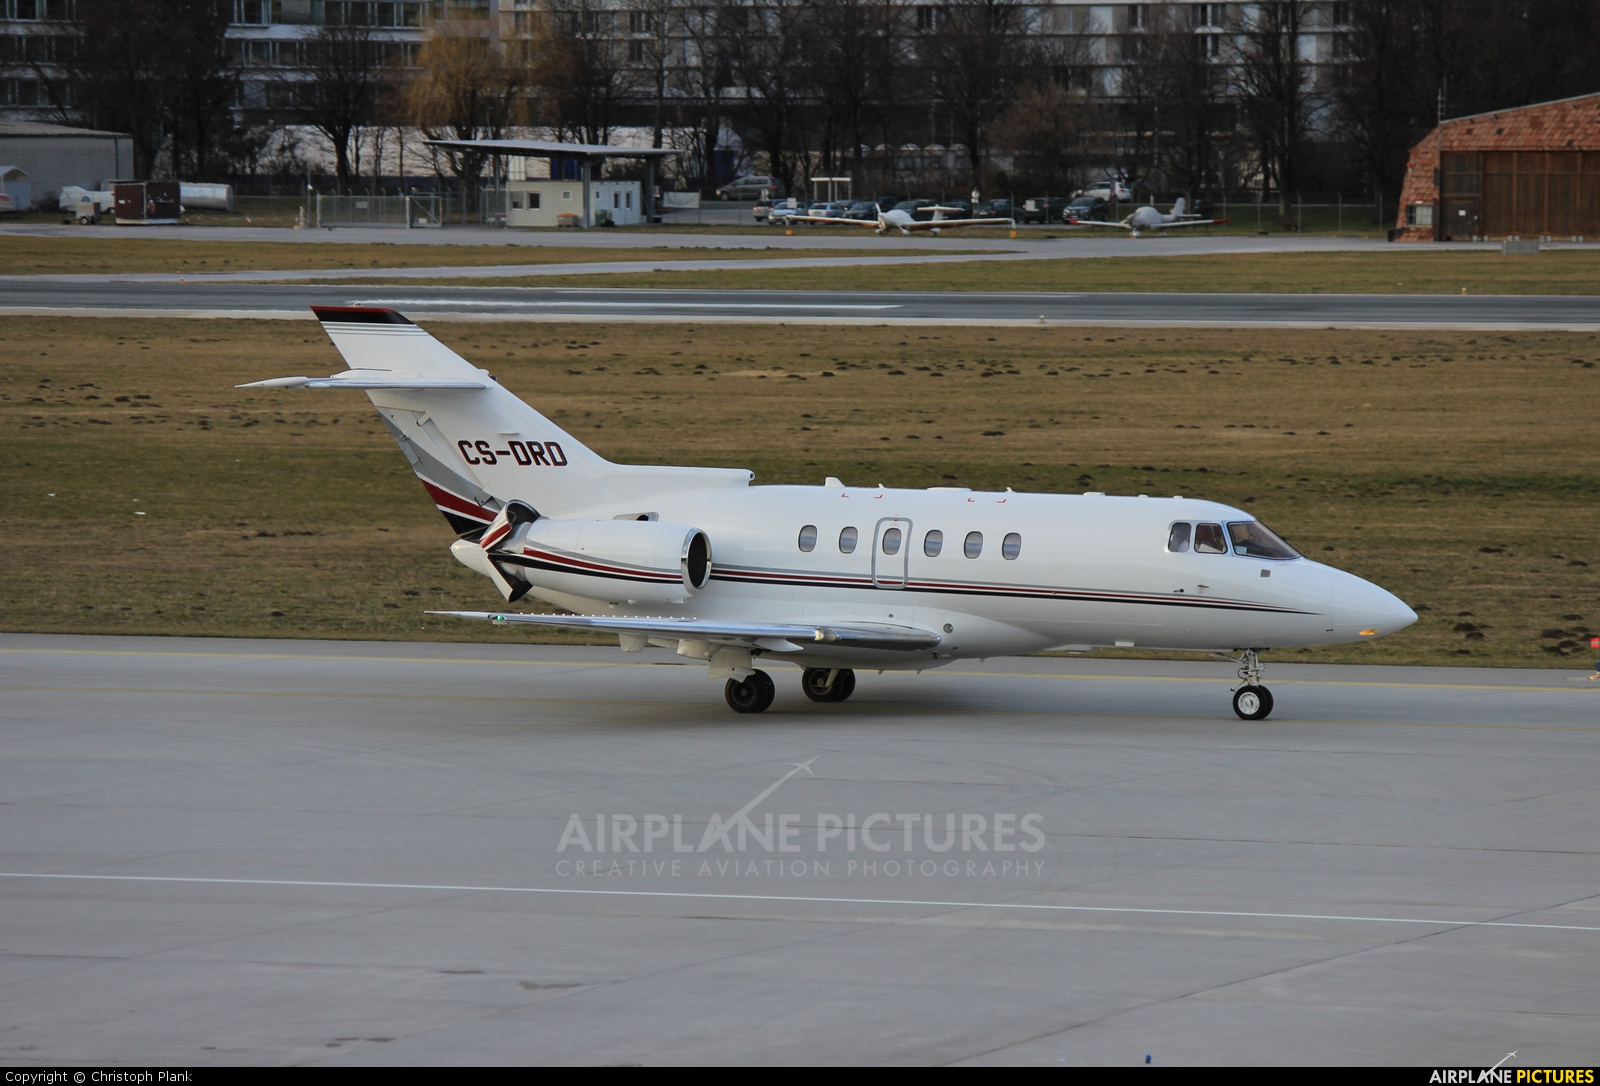 NetJets Europe (Portugal) CS-DRD aircraft at Innsbruck